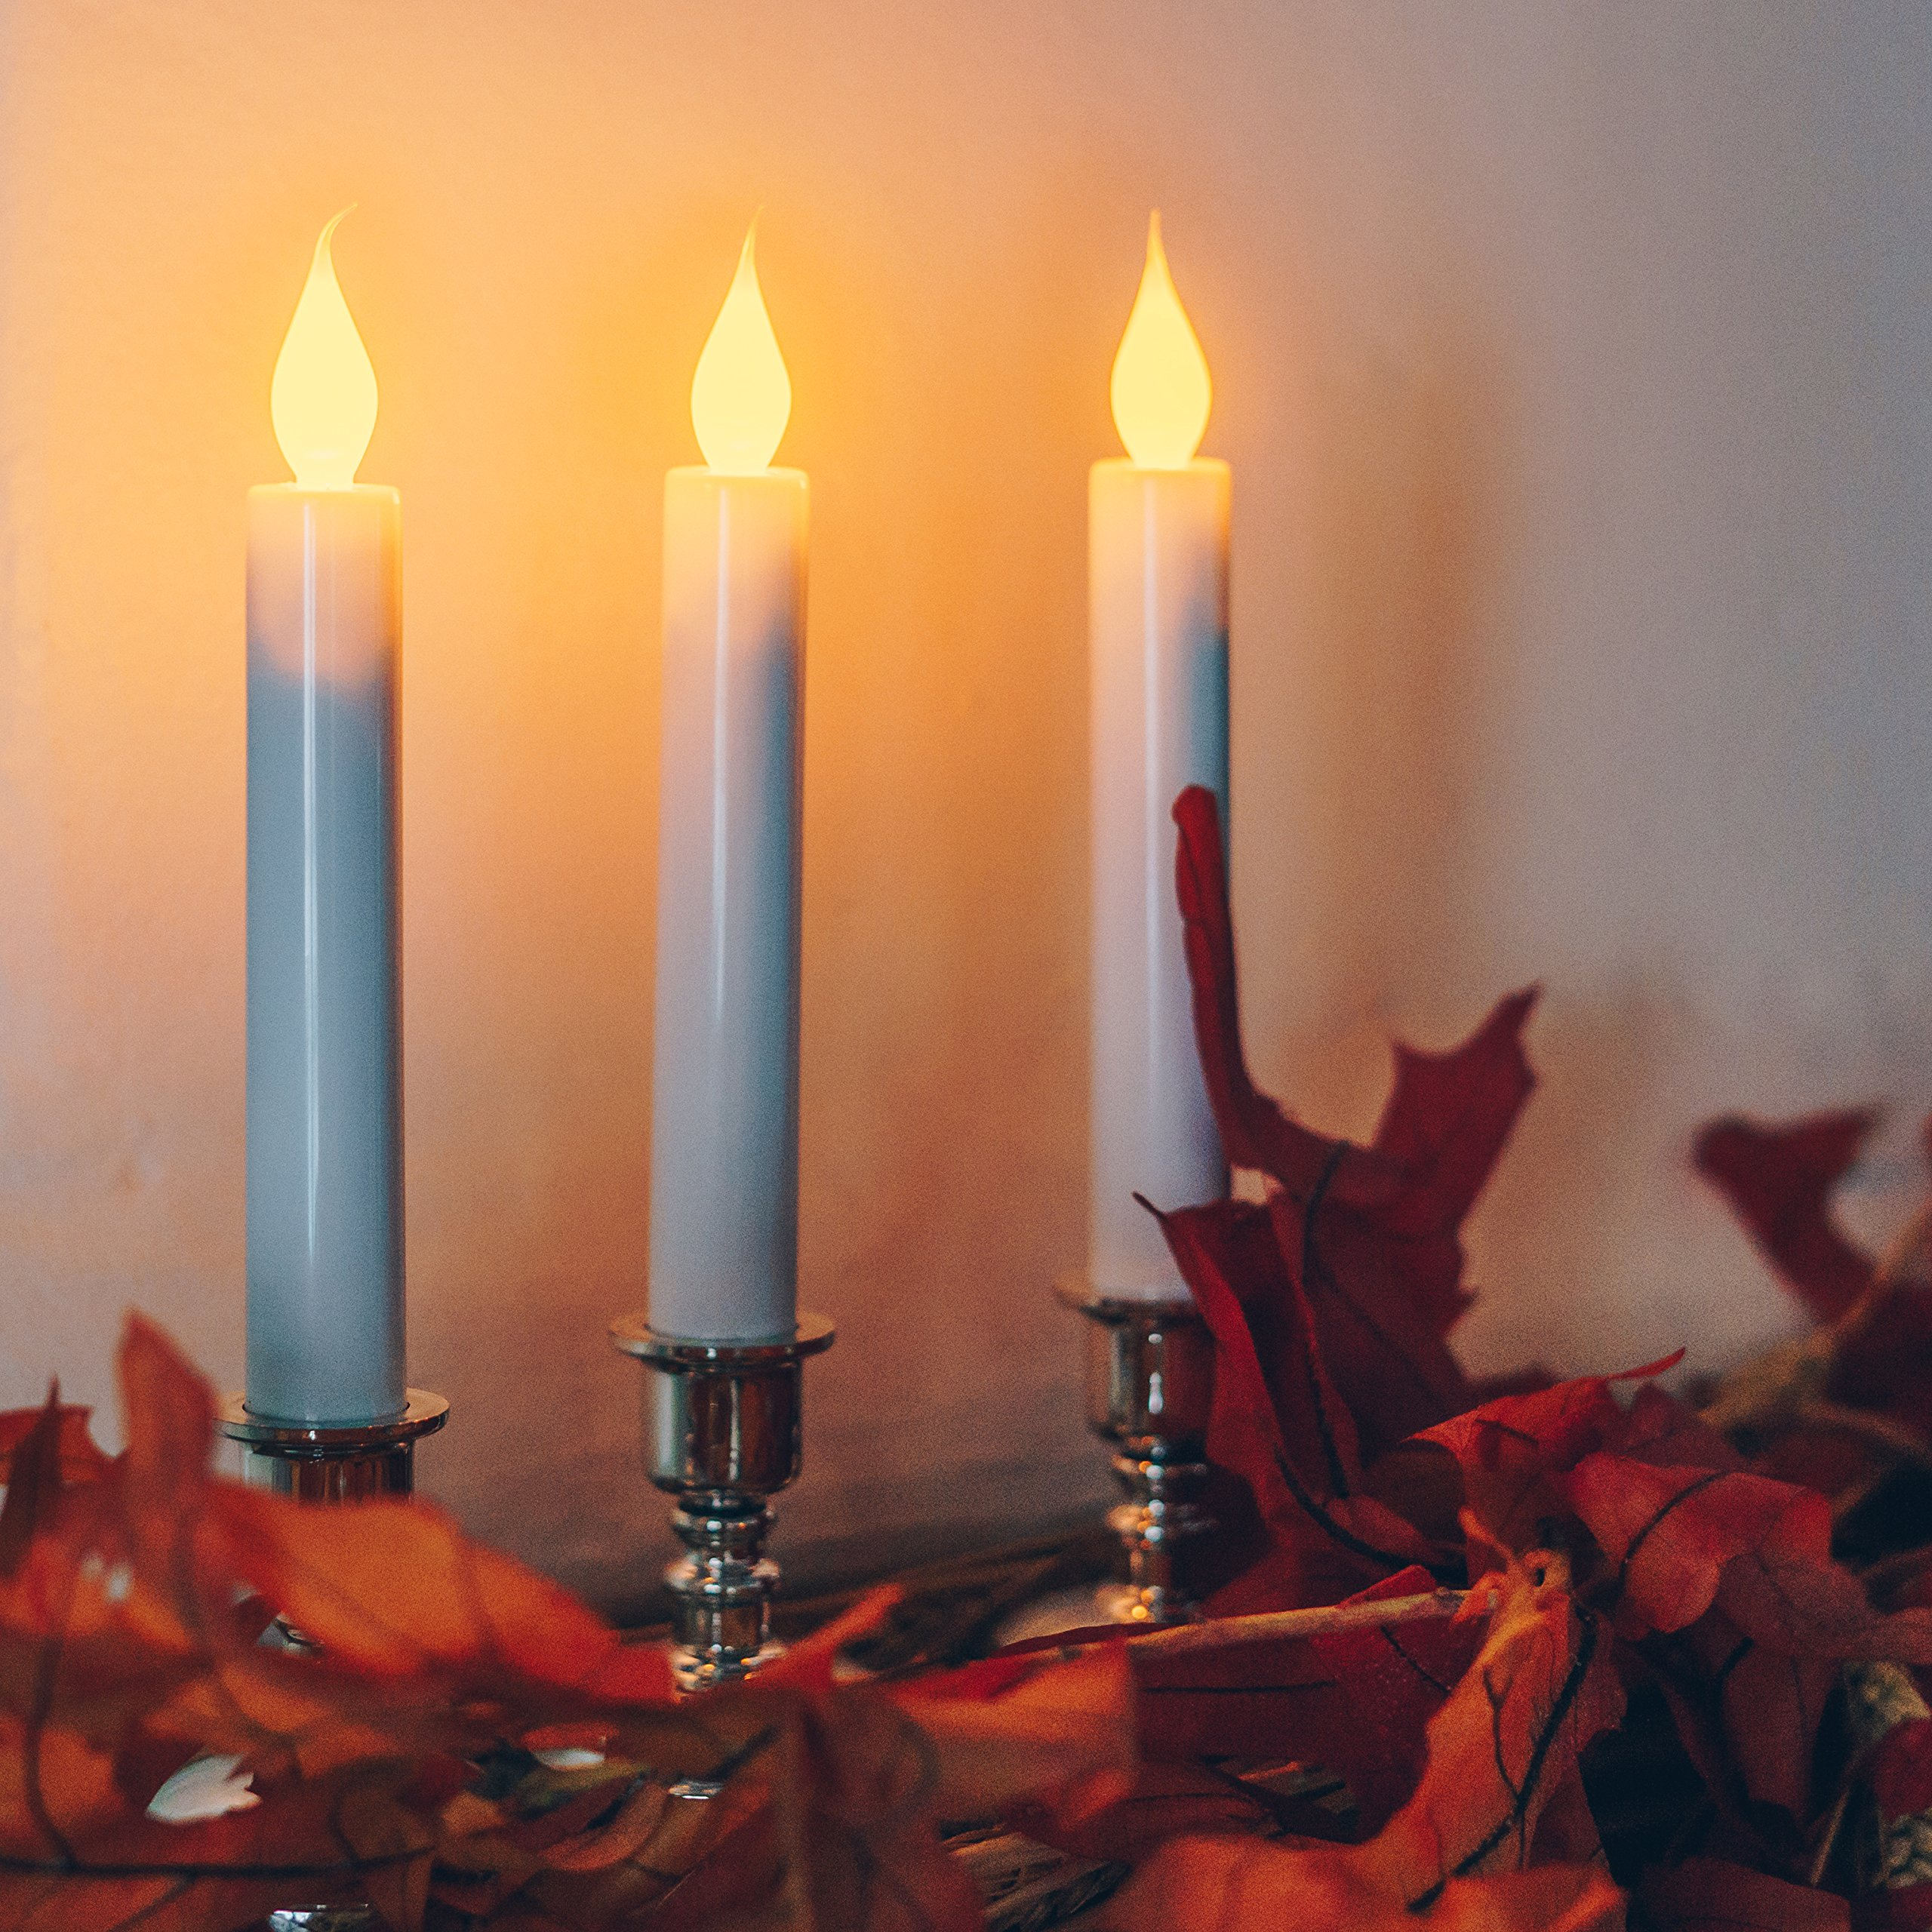 Set of 10 Flameless White Taper Window Candles with Removable Silver Candleholders with Timer and Remote, Batteries Included by Enchanted Spaces (Image #4)